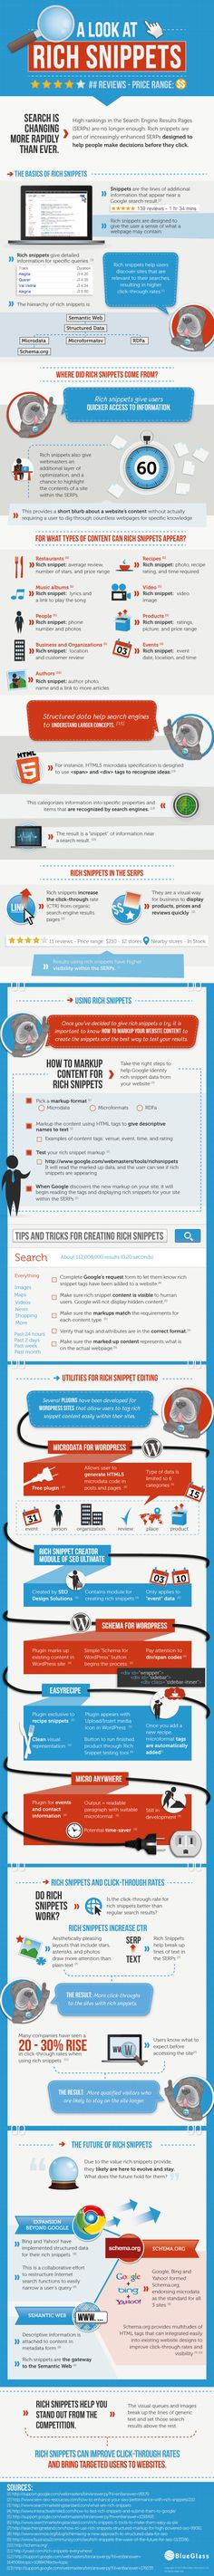 Visual History of Rich Snippets